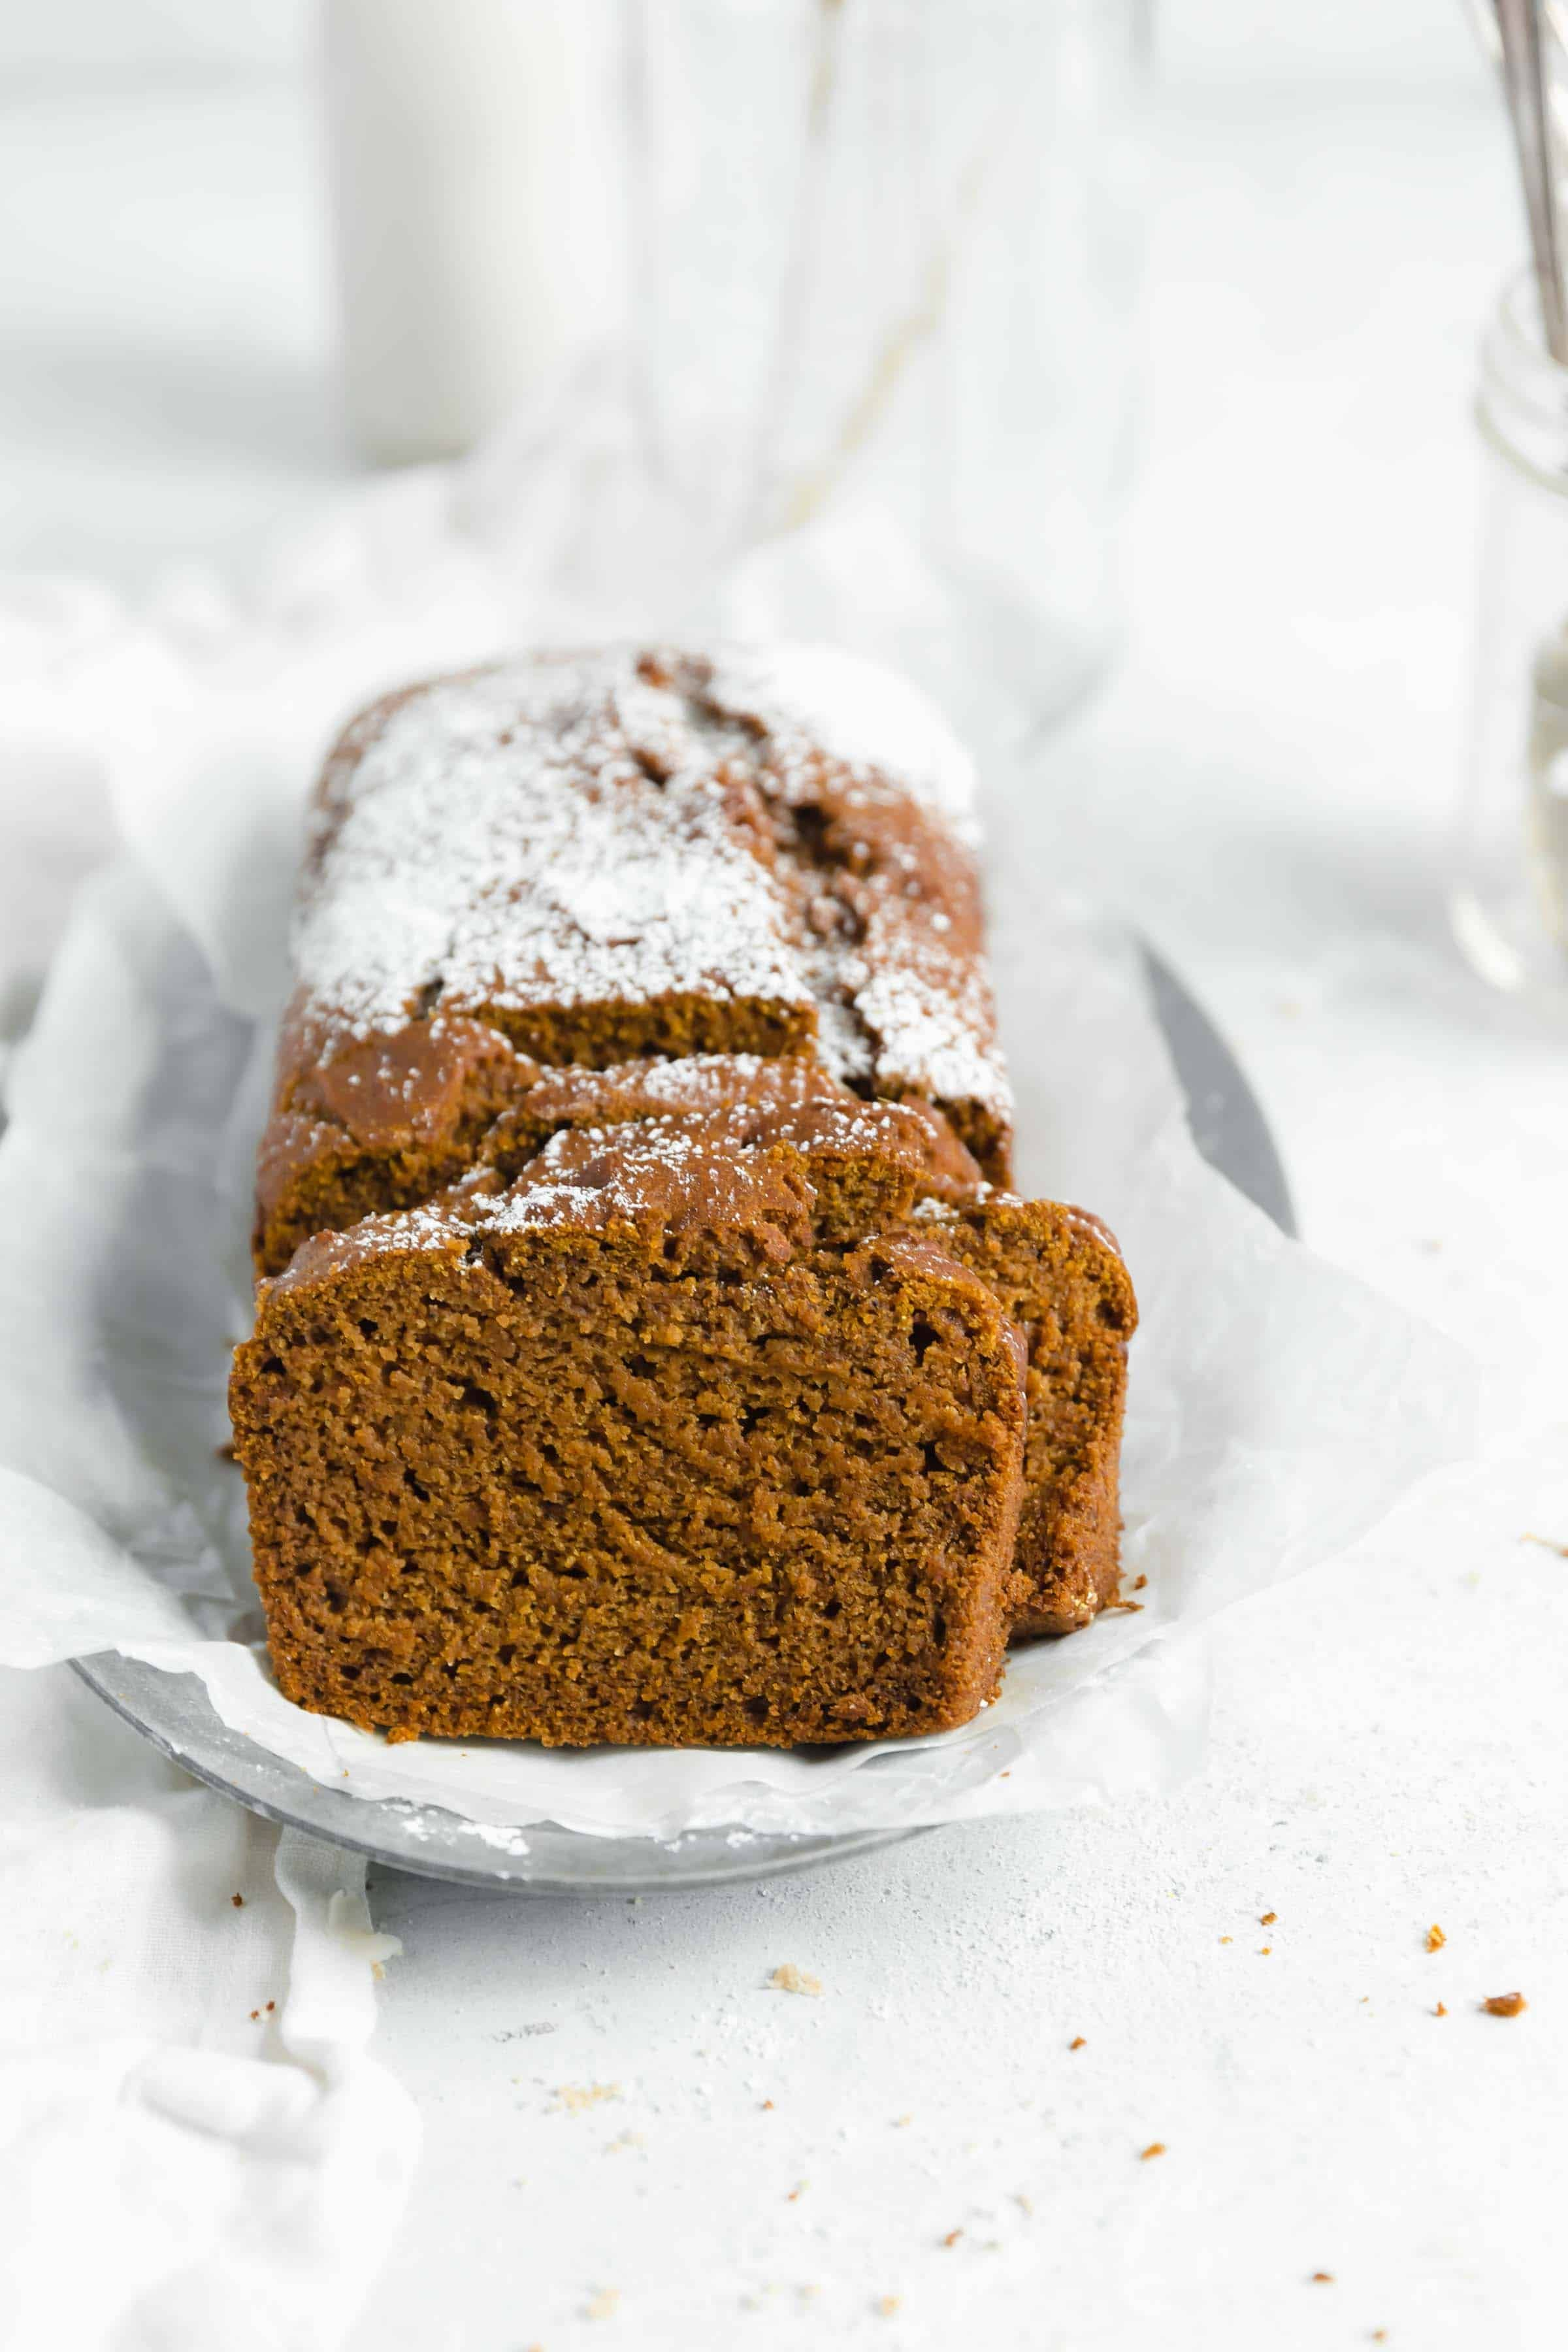 Healthy Gluten Free Pumpkin Bread Made With A Whole Cup Of Pumpkin